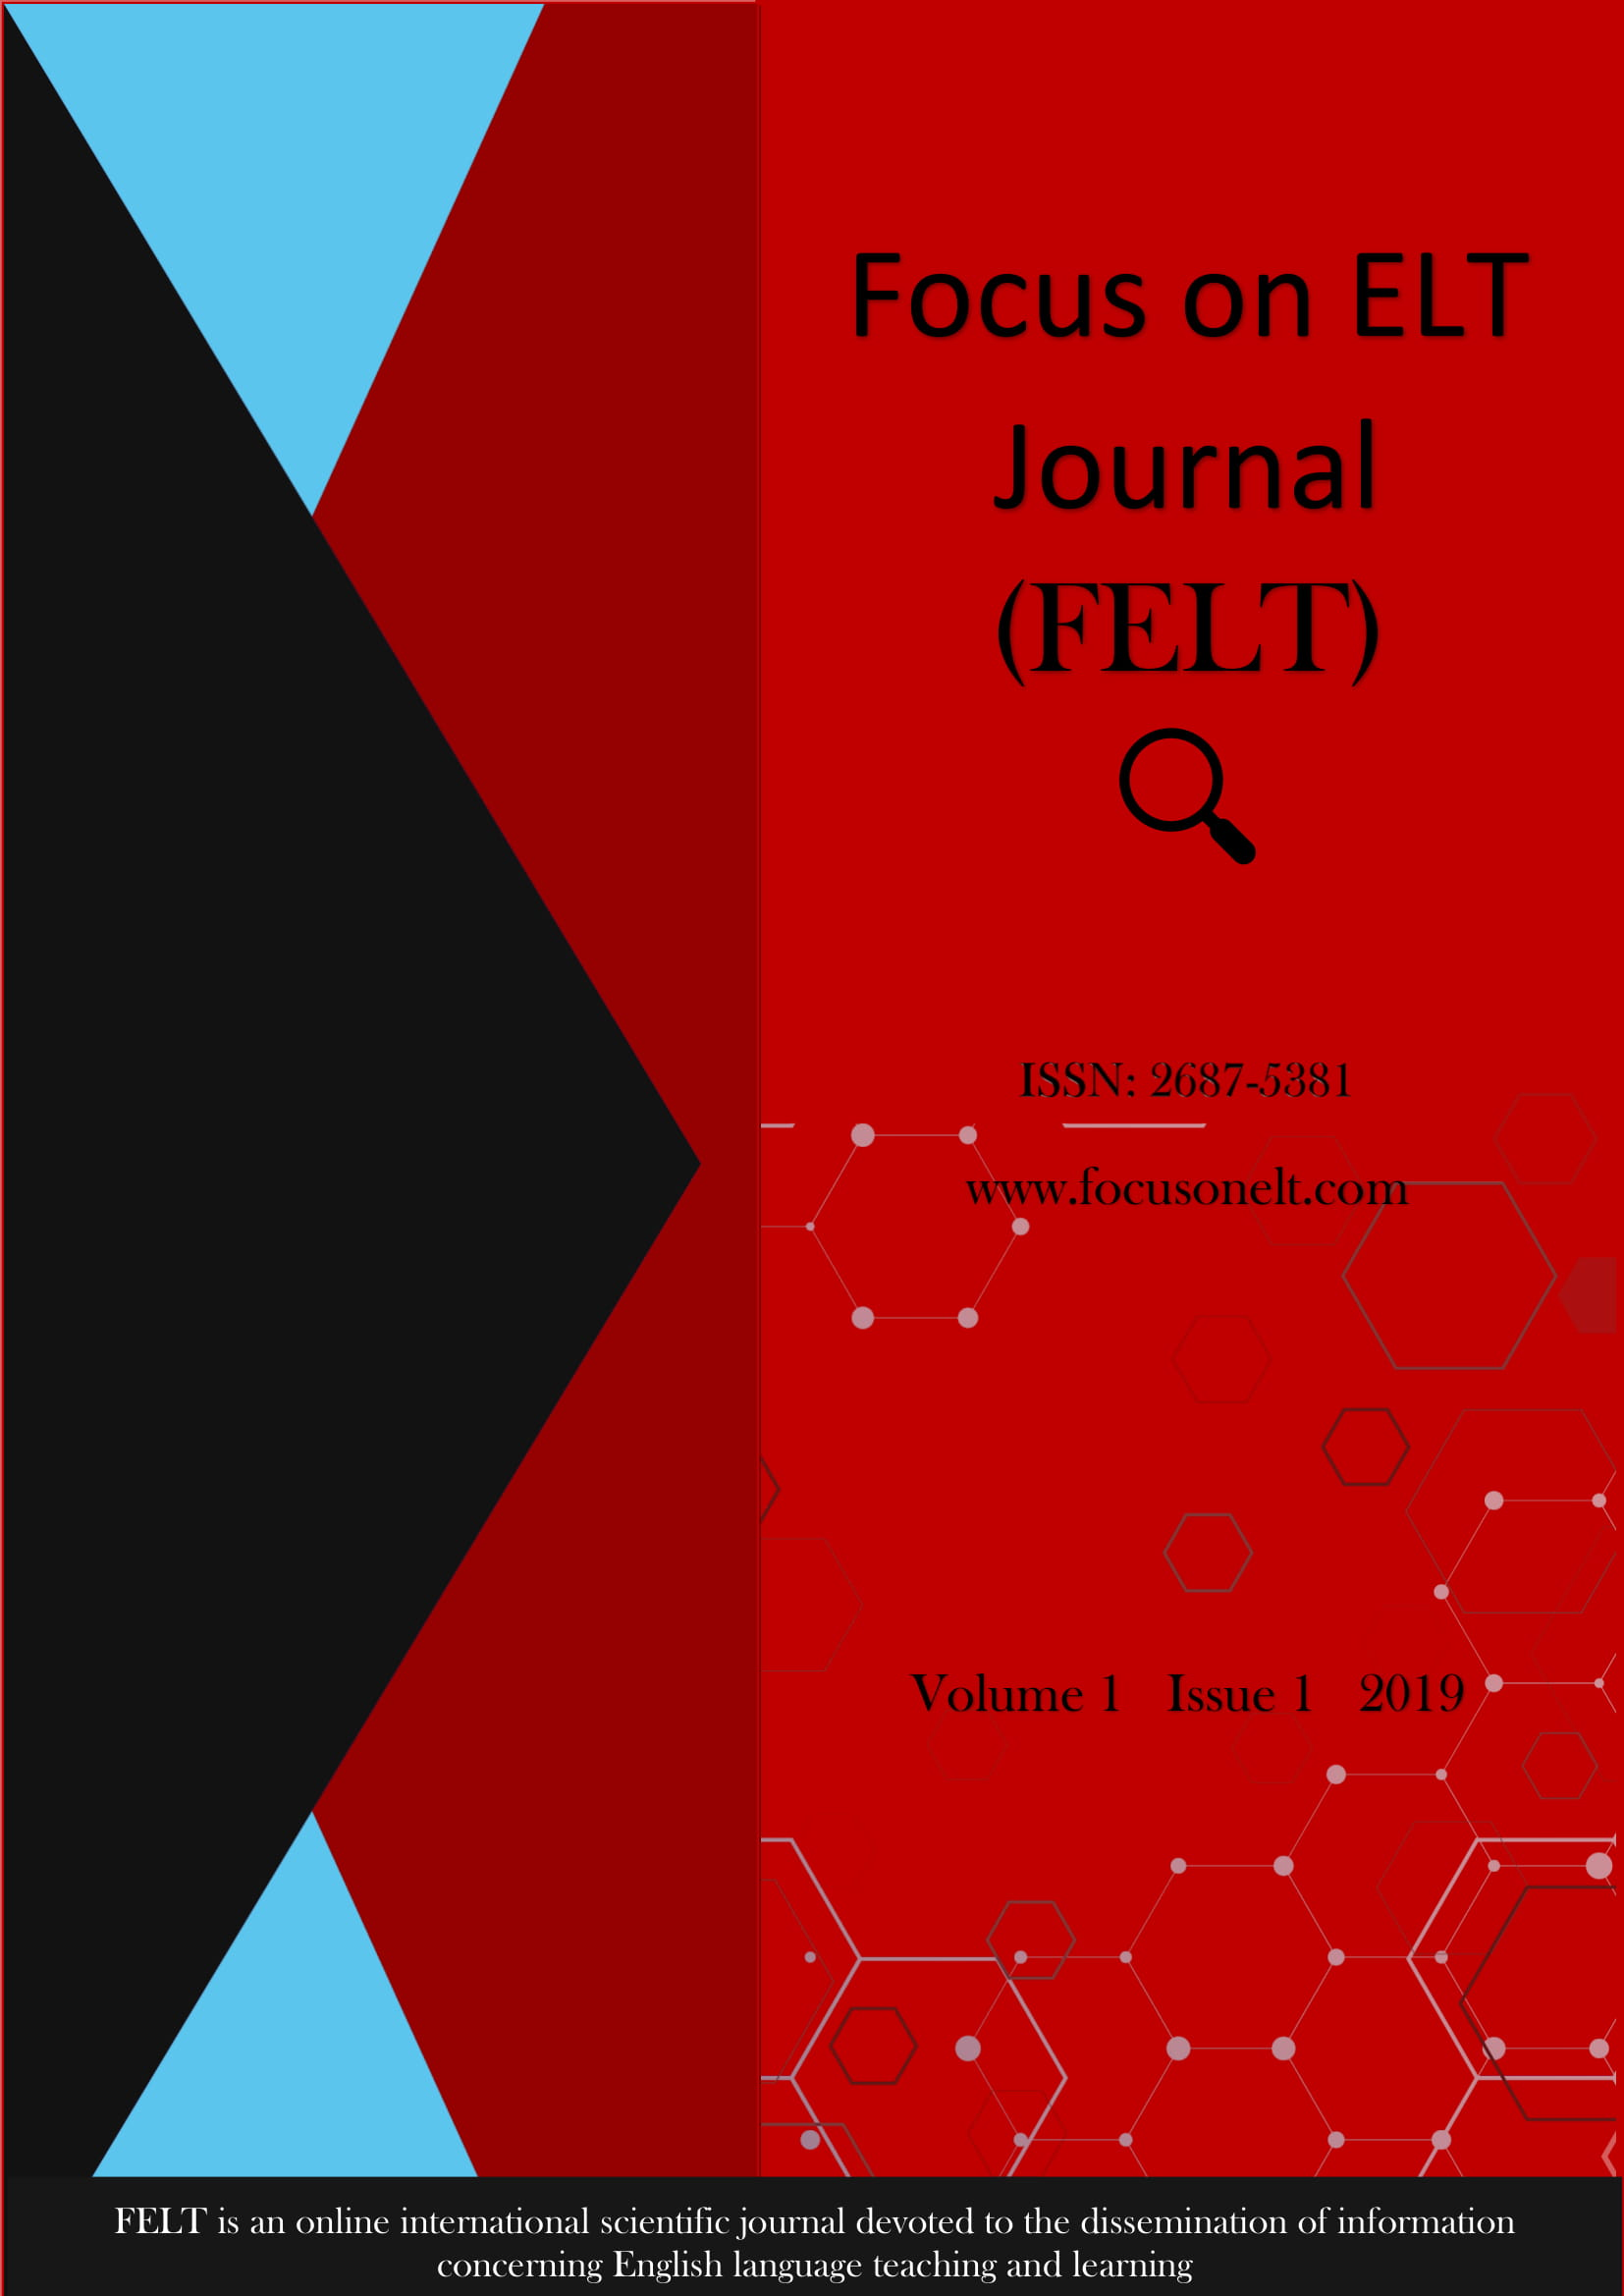 Focus on ELT Journal